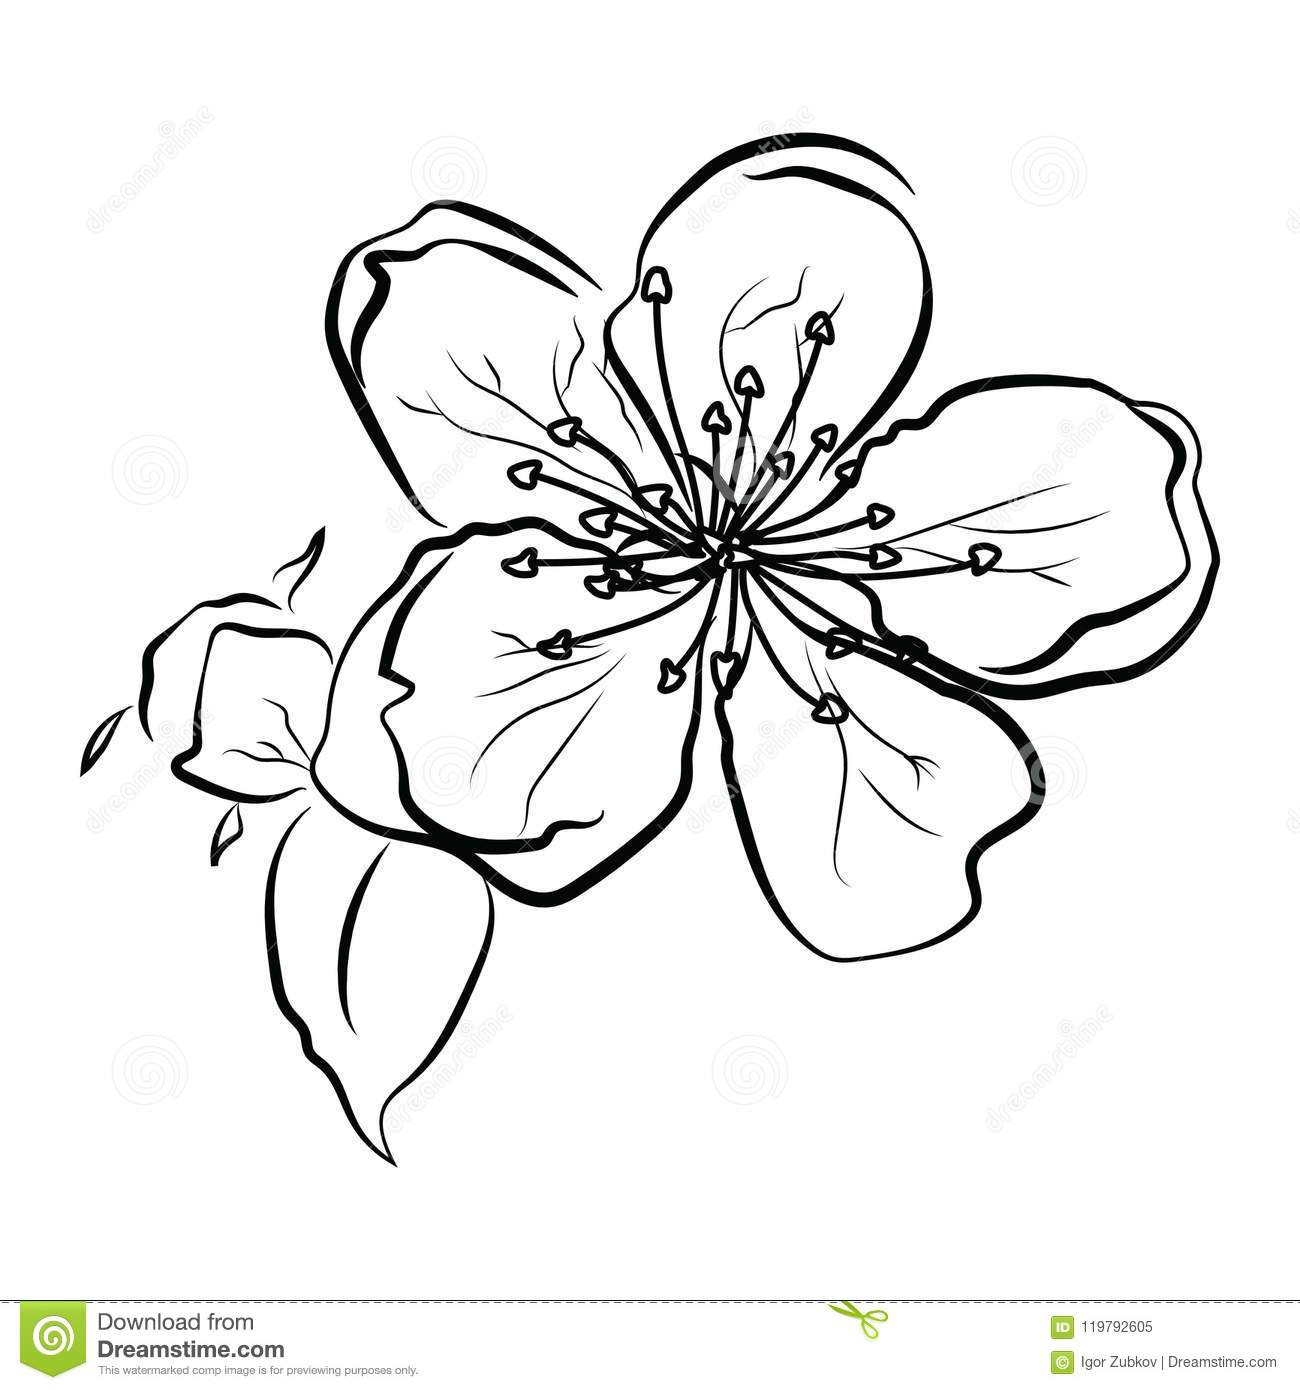 f324906c4 Blooming cherry. Sakura branch with flower buds. Black and white drawing of  a blossoming tree in spring. Logo with Japanese cherry blossoms. Tattoo.